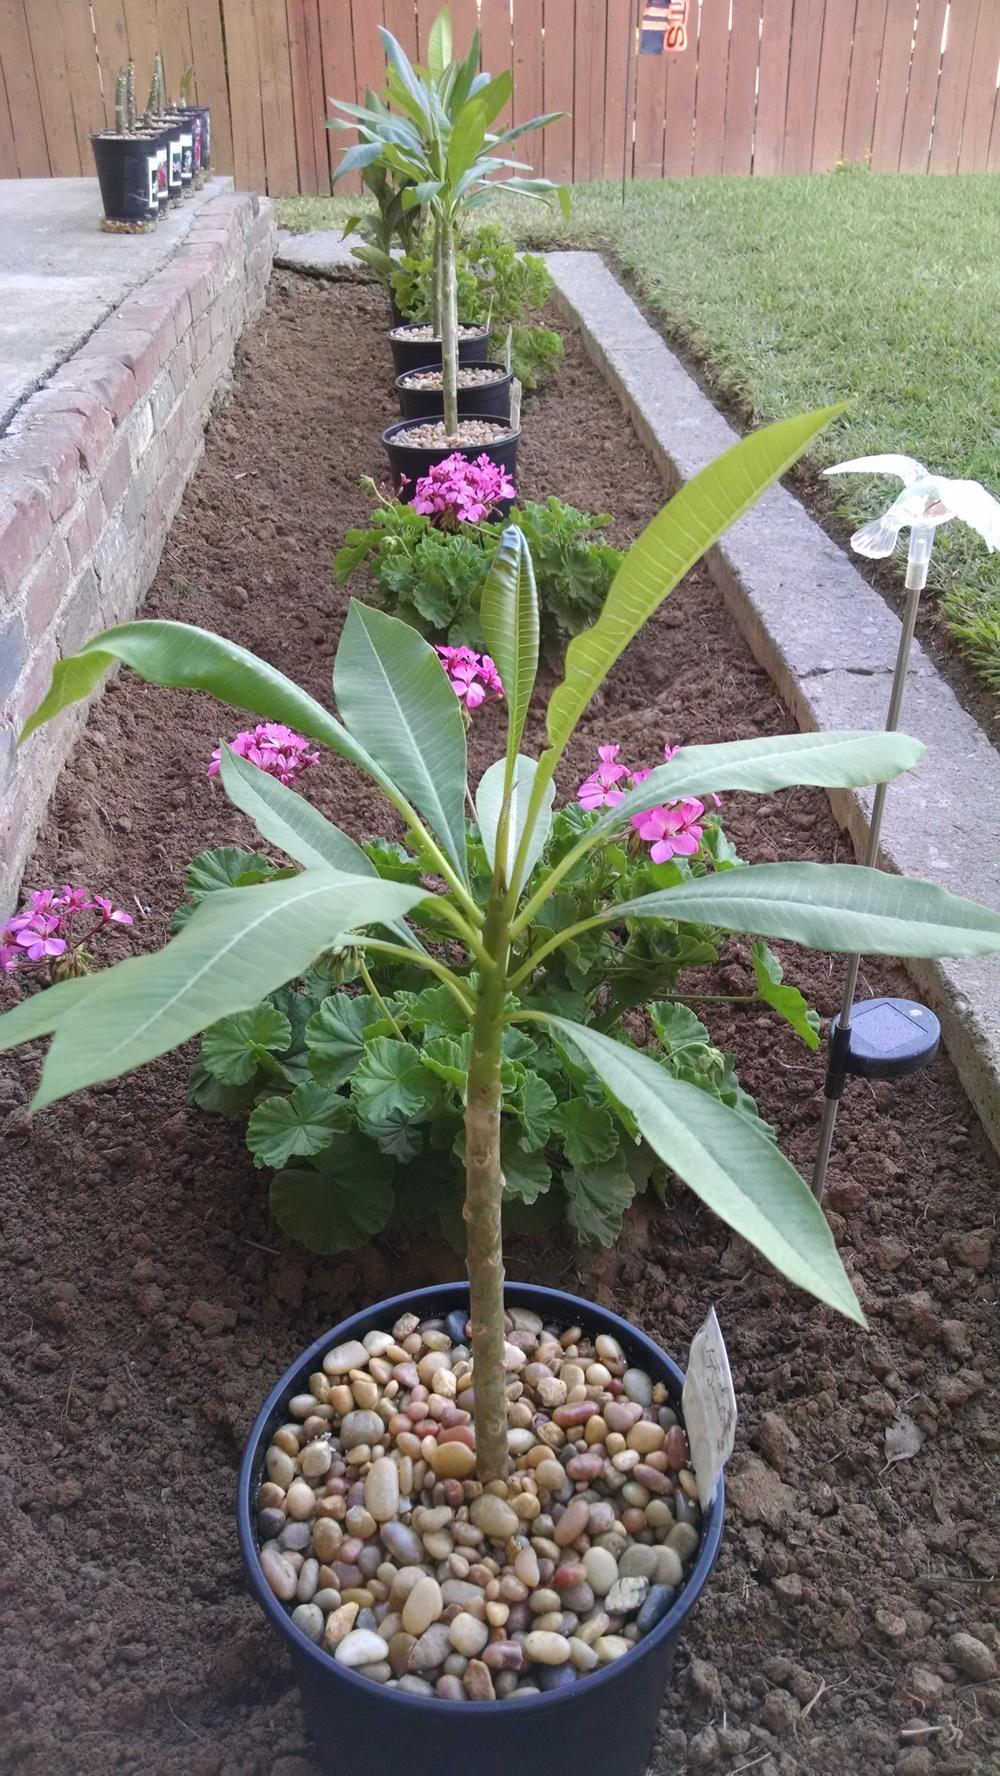 Plumeria Forum Re Potted Plumeria Leave Drooping Garden Org